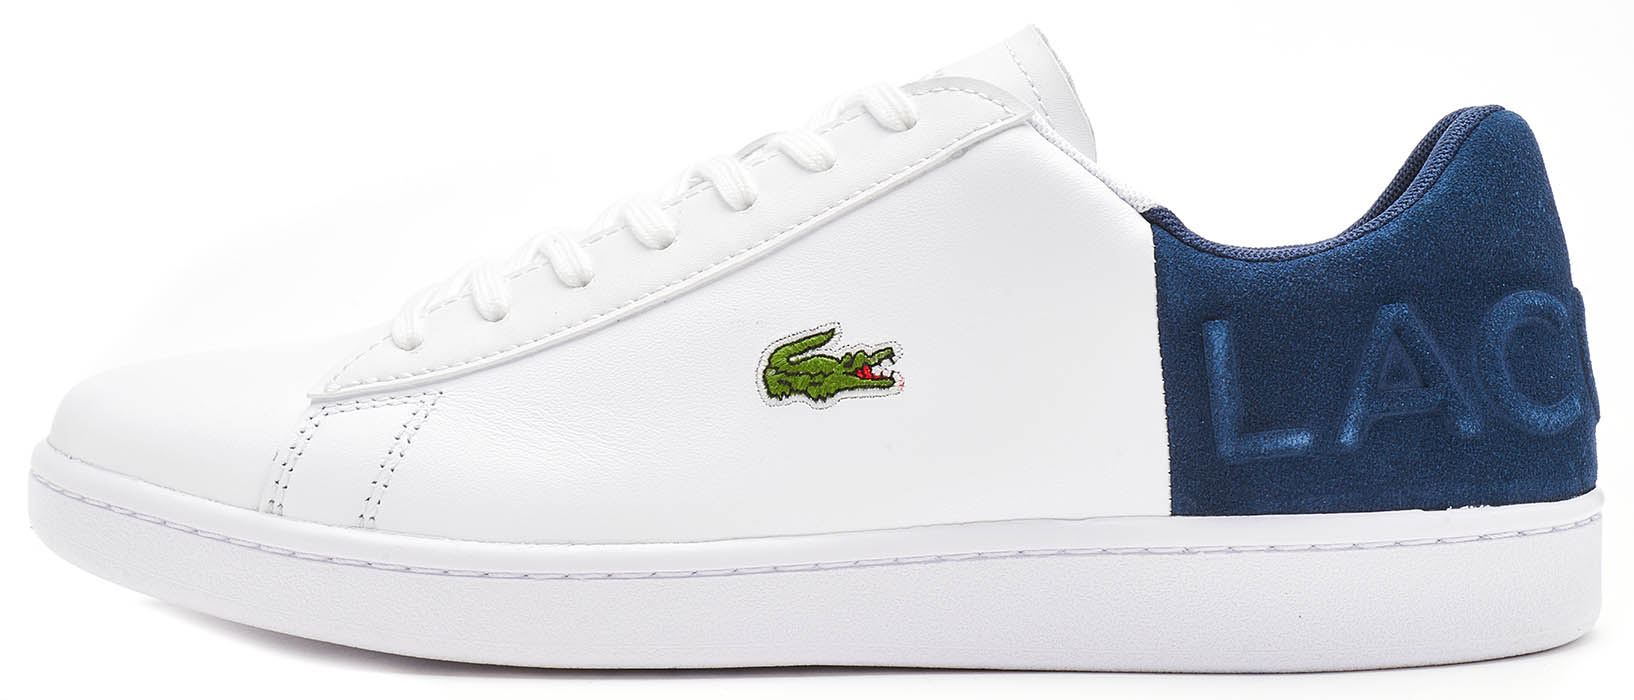 709e9046679ce Description A timeless Lacoste court shoe presented in a classic colour  palette. Leather and suede uppers feature a new  Lacoste  embossed heel  pattern and ...